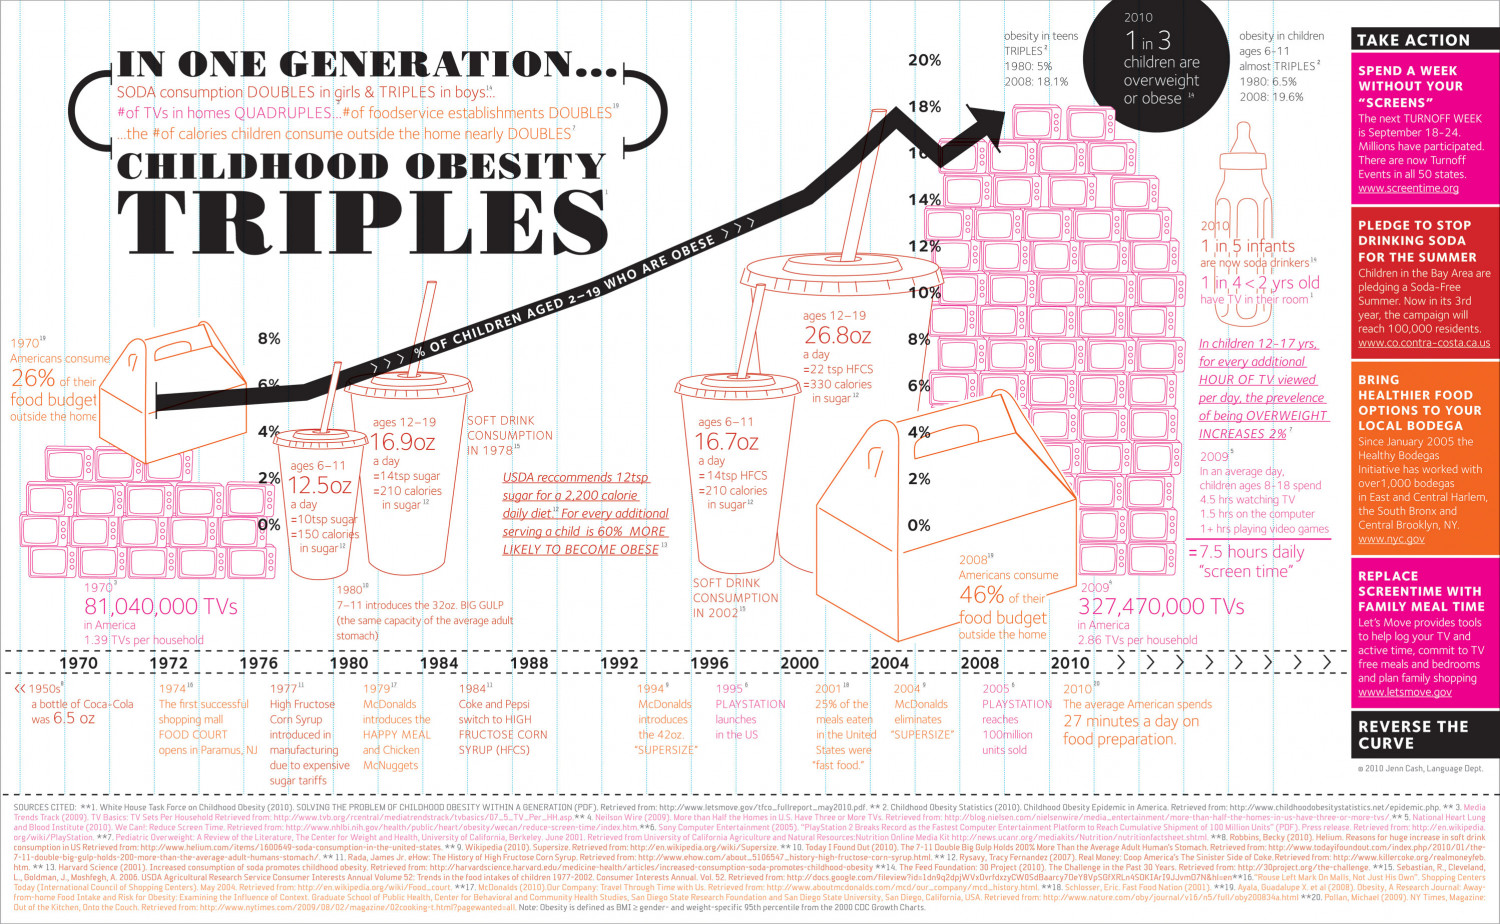 Childhood Obesity Triples in One Generation Infographic